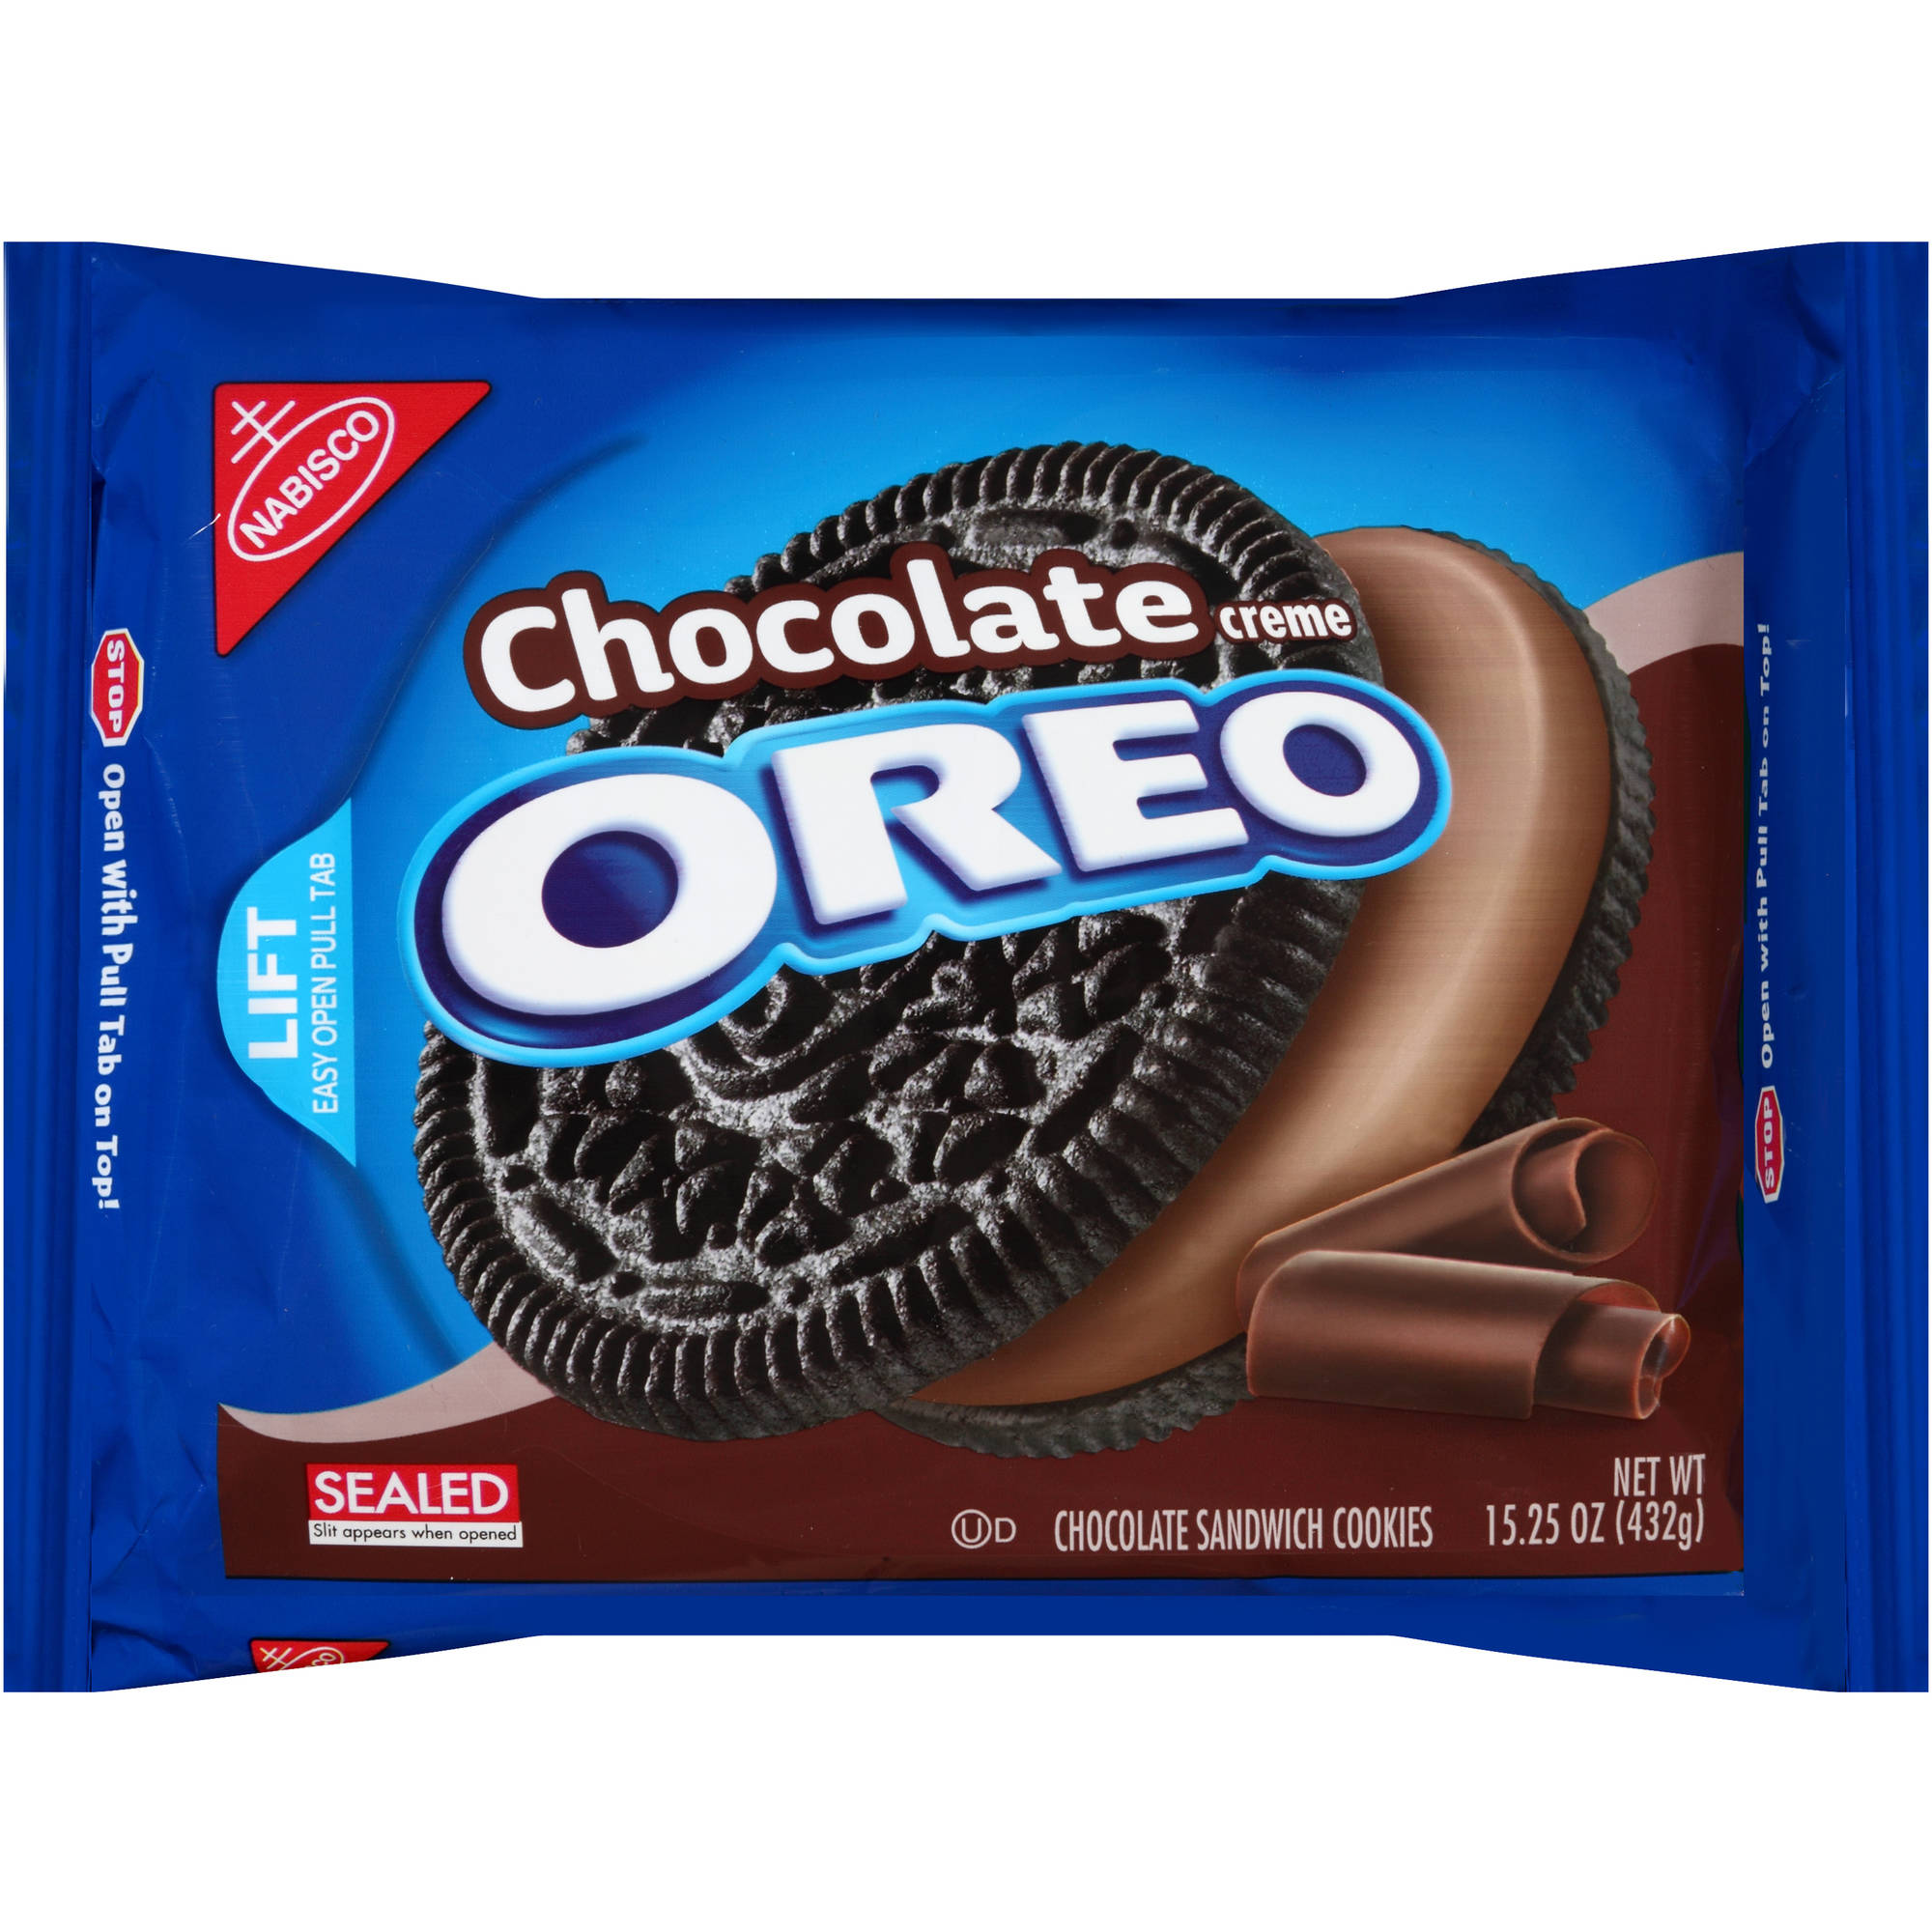 Nabisco Oreo Chocolate Creme Chocolate Sandwich Cookies, 15.25 oz